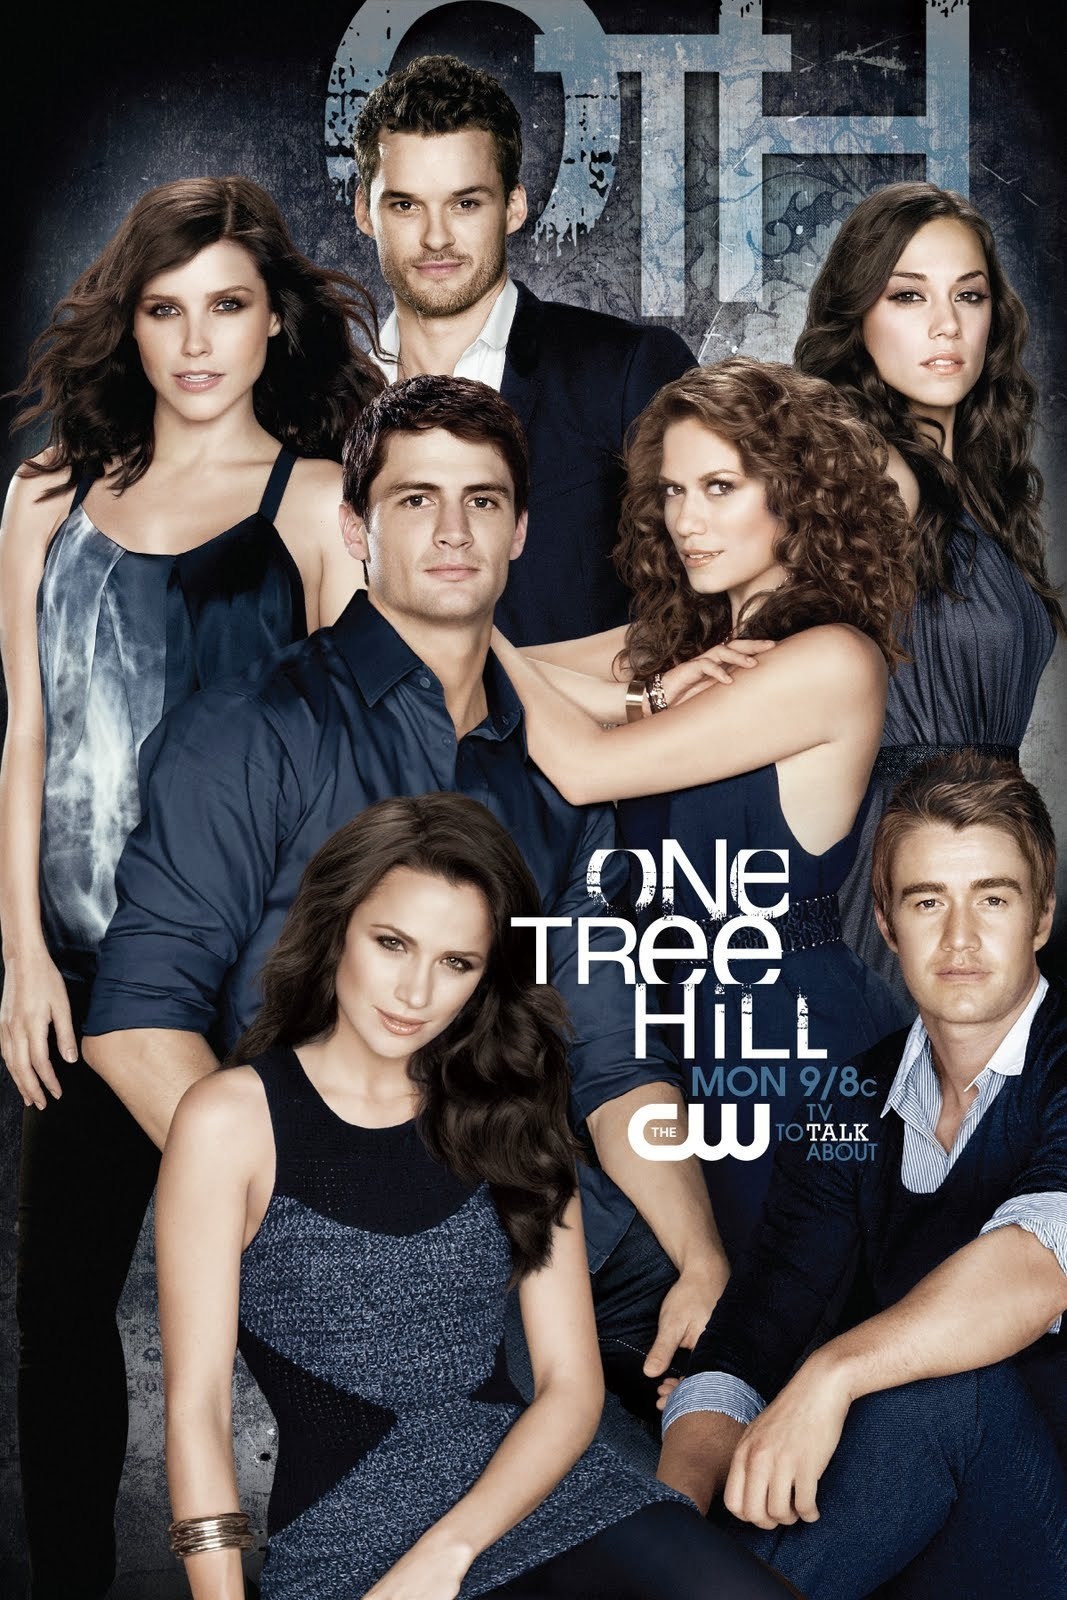 http://images2.fanpop.com/image/photos/8800000/New-Poster-one-tree-hill-8843422-1067-1600.jpg